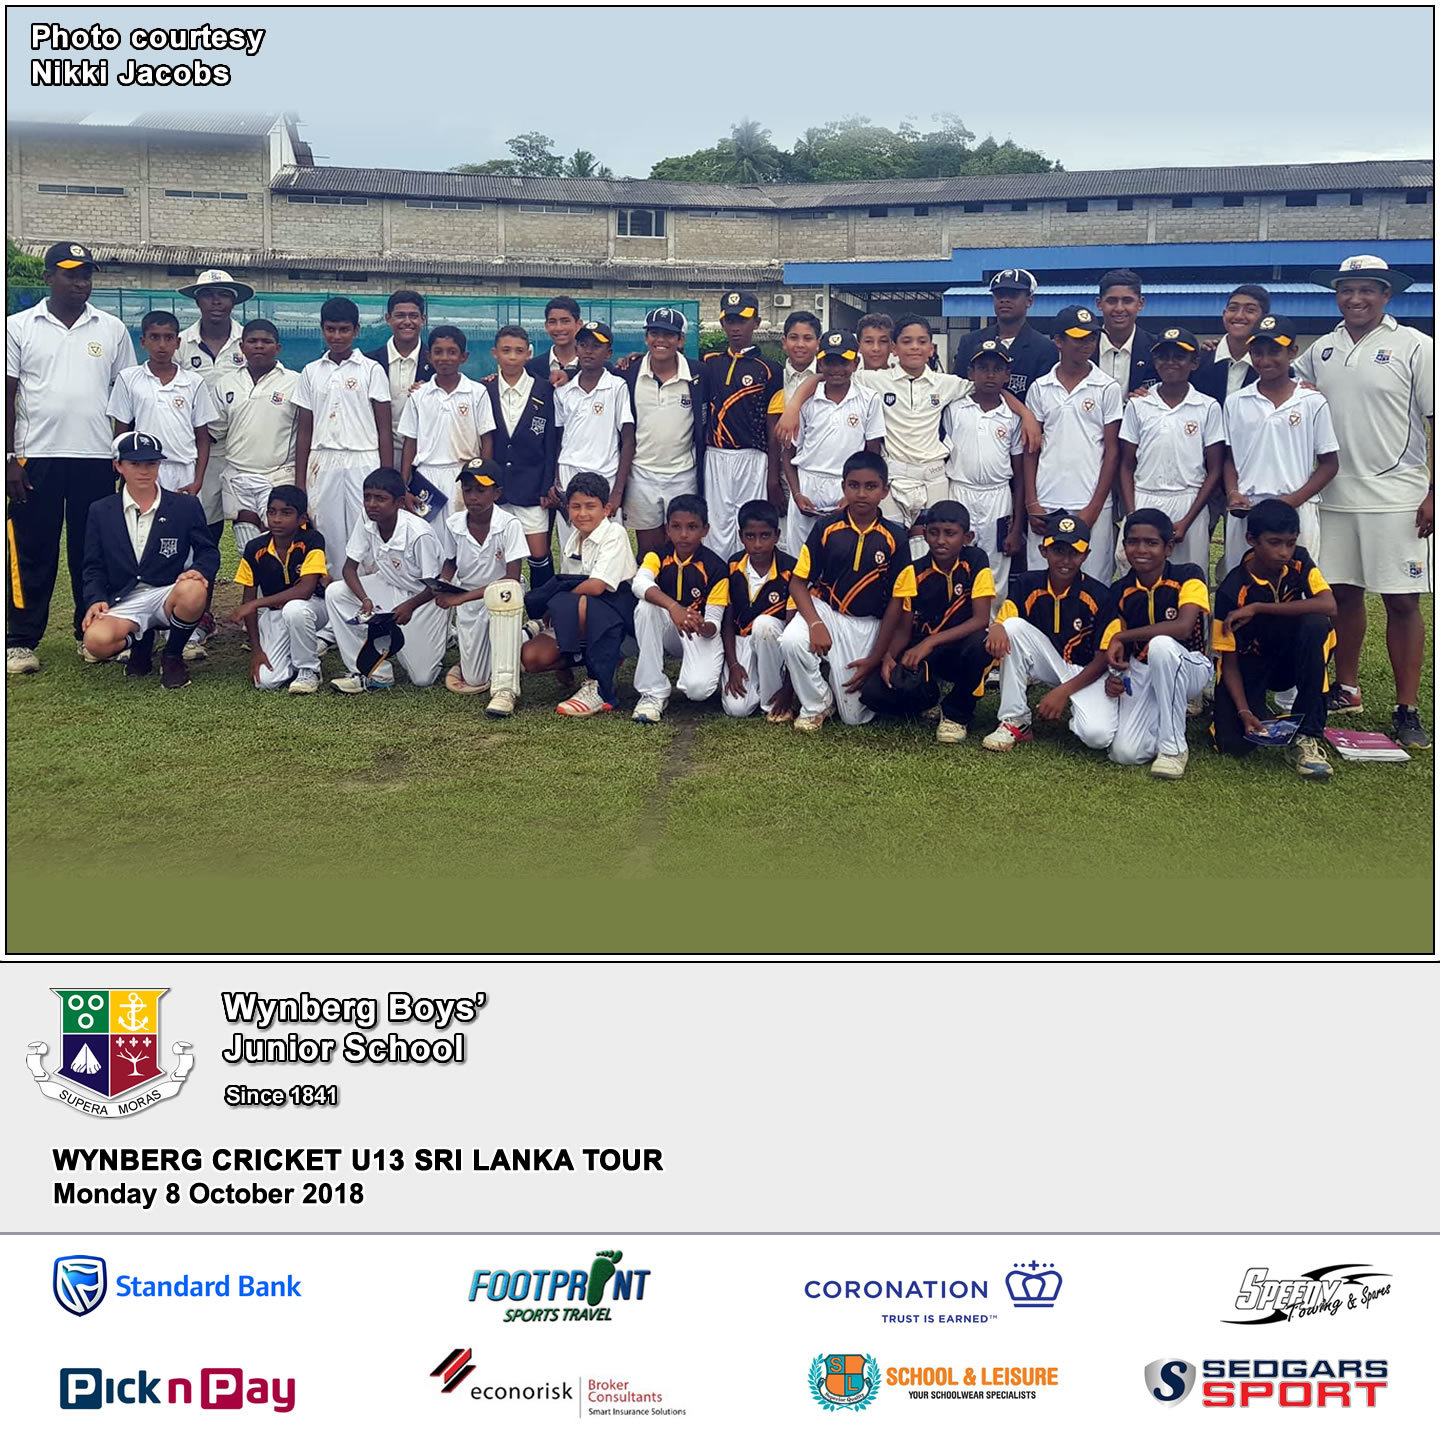 Day 8, Match 4 against Mahinda College, Monday 8 October 2018